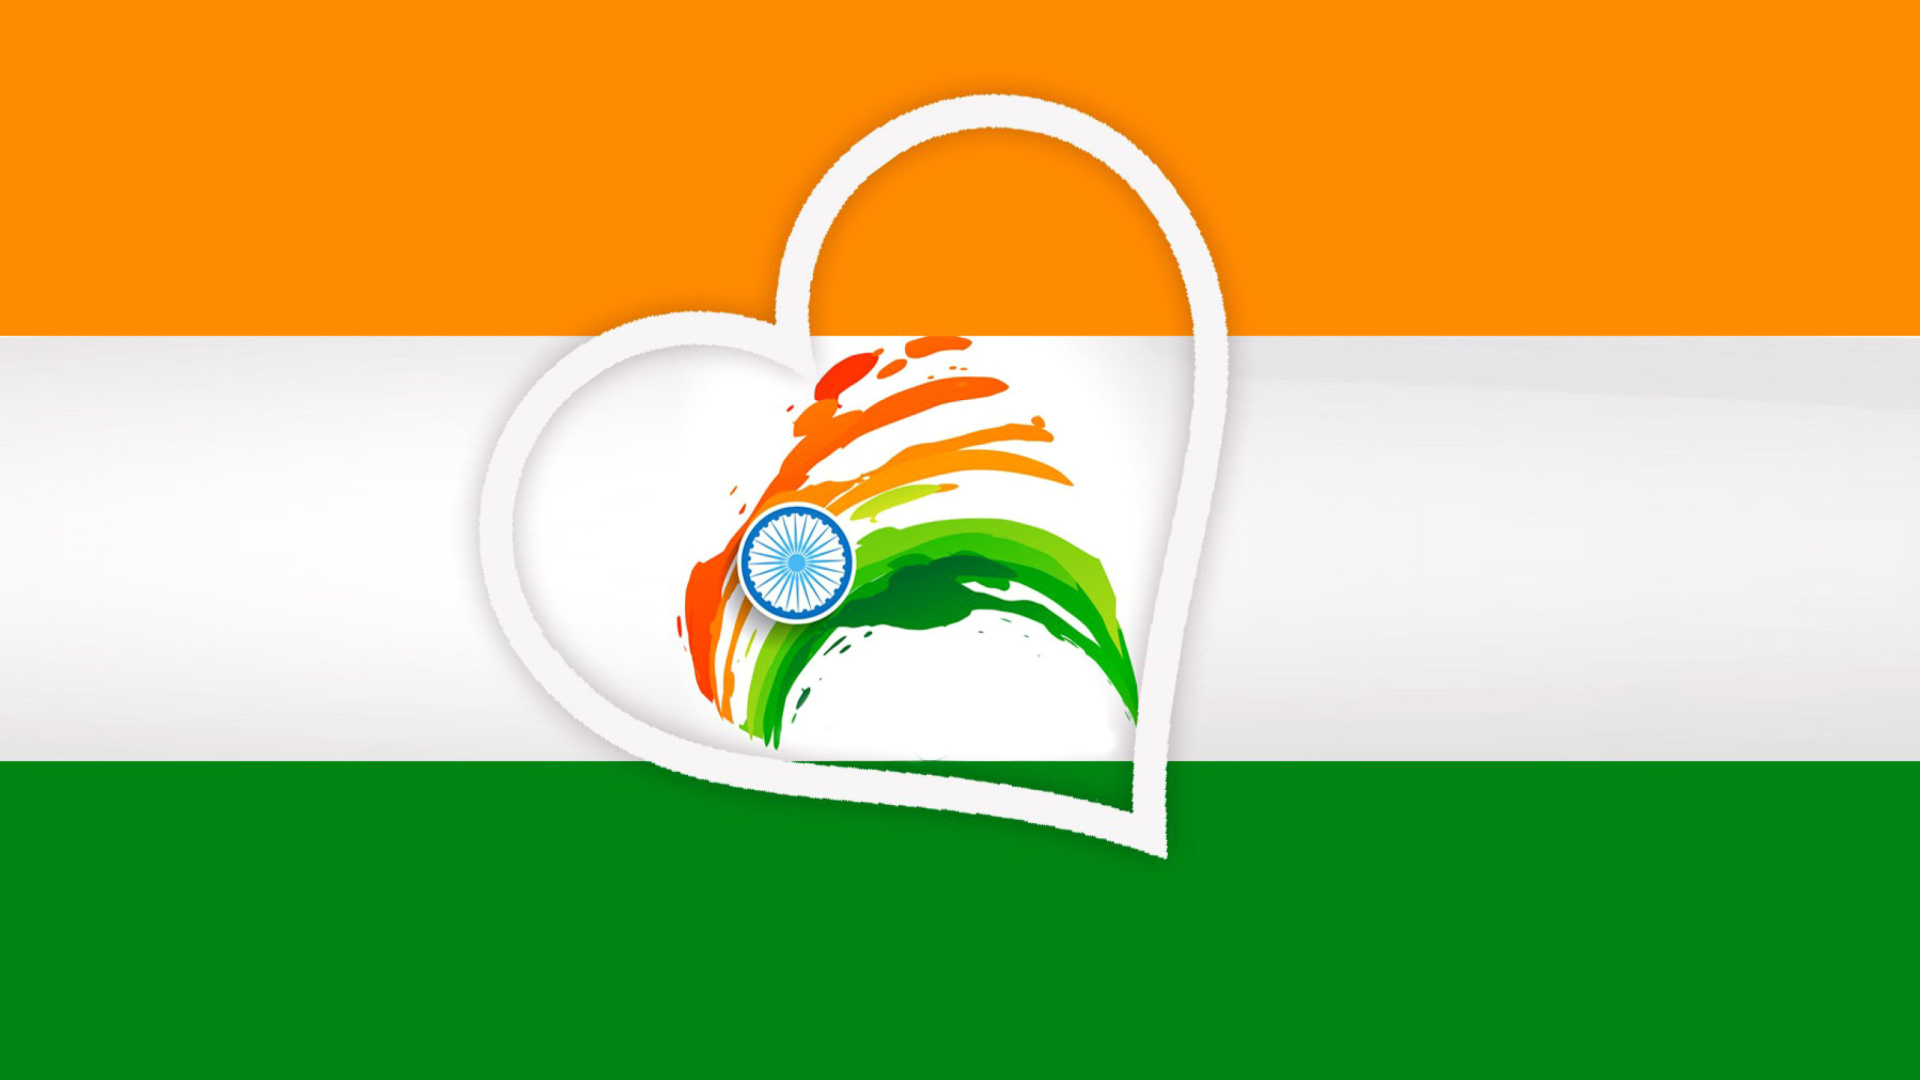 India Flag Hd 1920 X 1080: Happy Independence Day Of India Flag